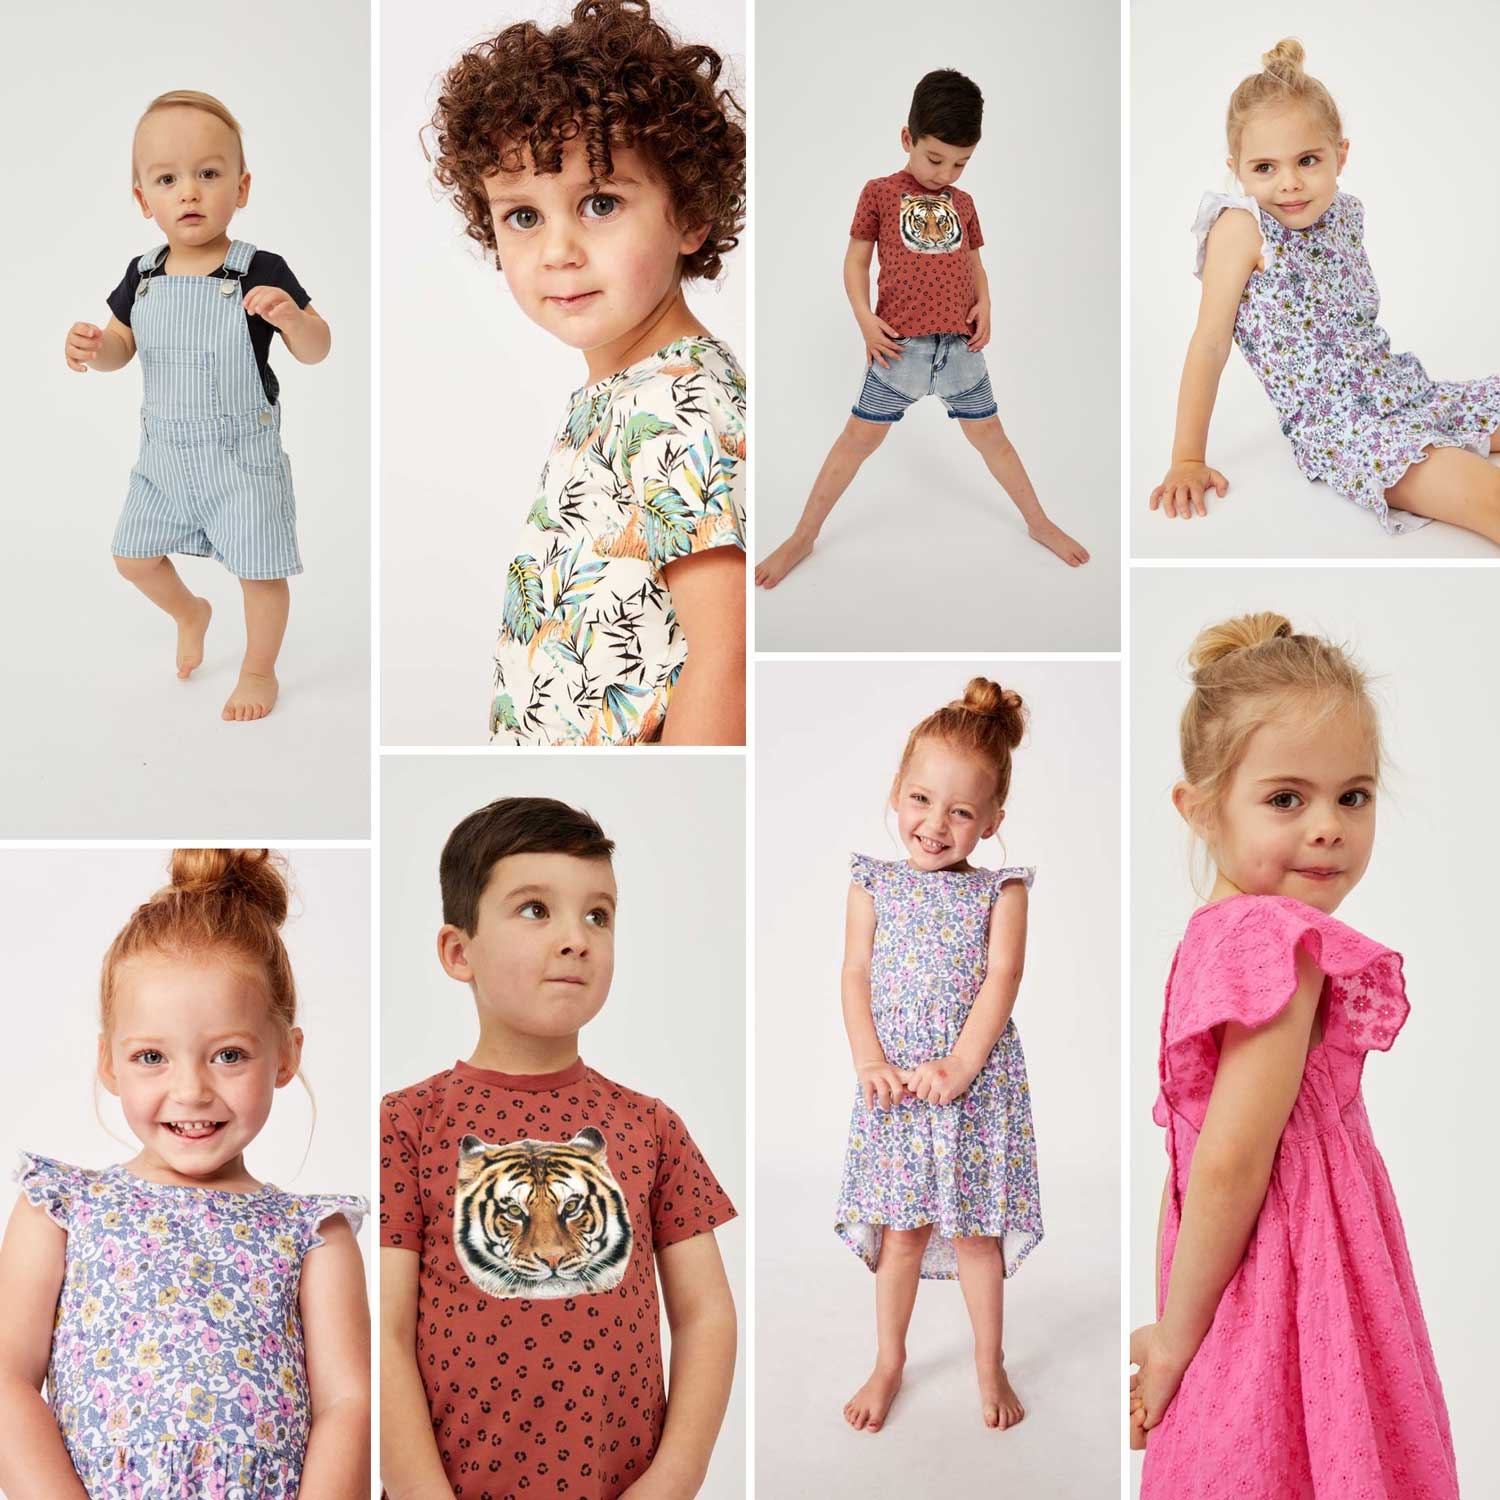 Milky Kids Clothing. What's in store for Summer 20/21